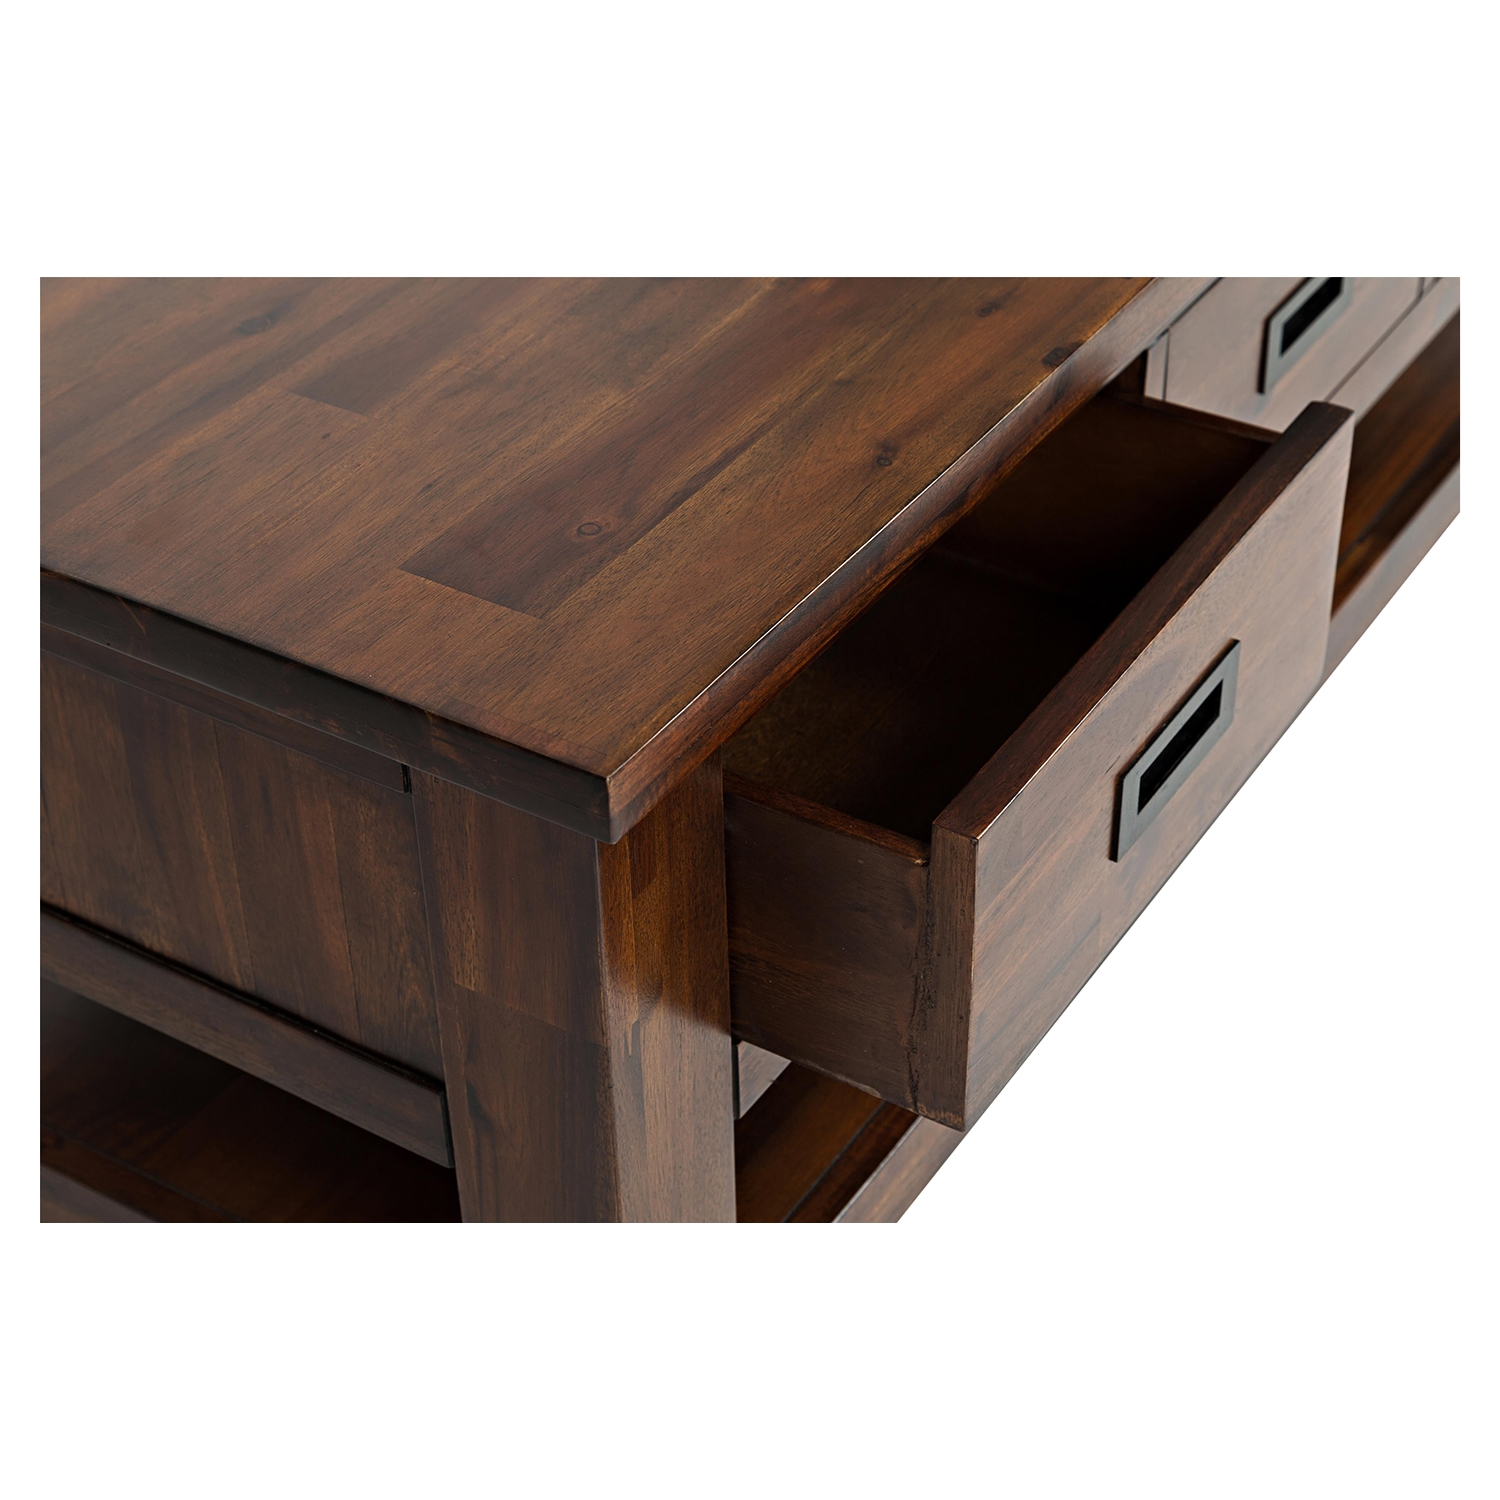 Coolidge Corner 3-Drawer Cocktail Table - JOFR-1500-1